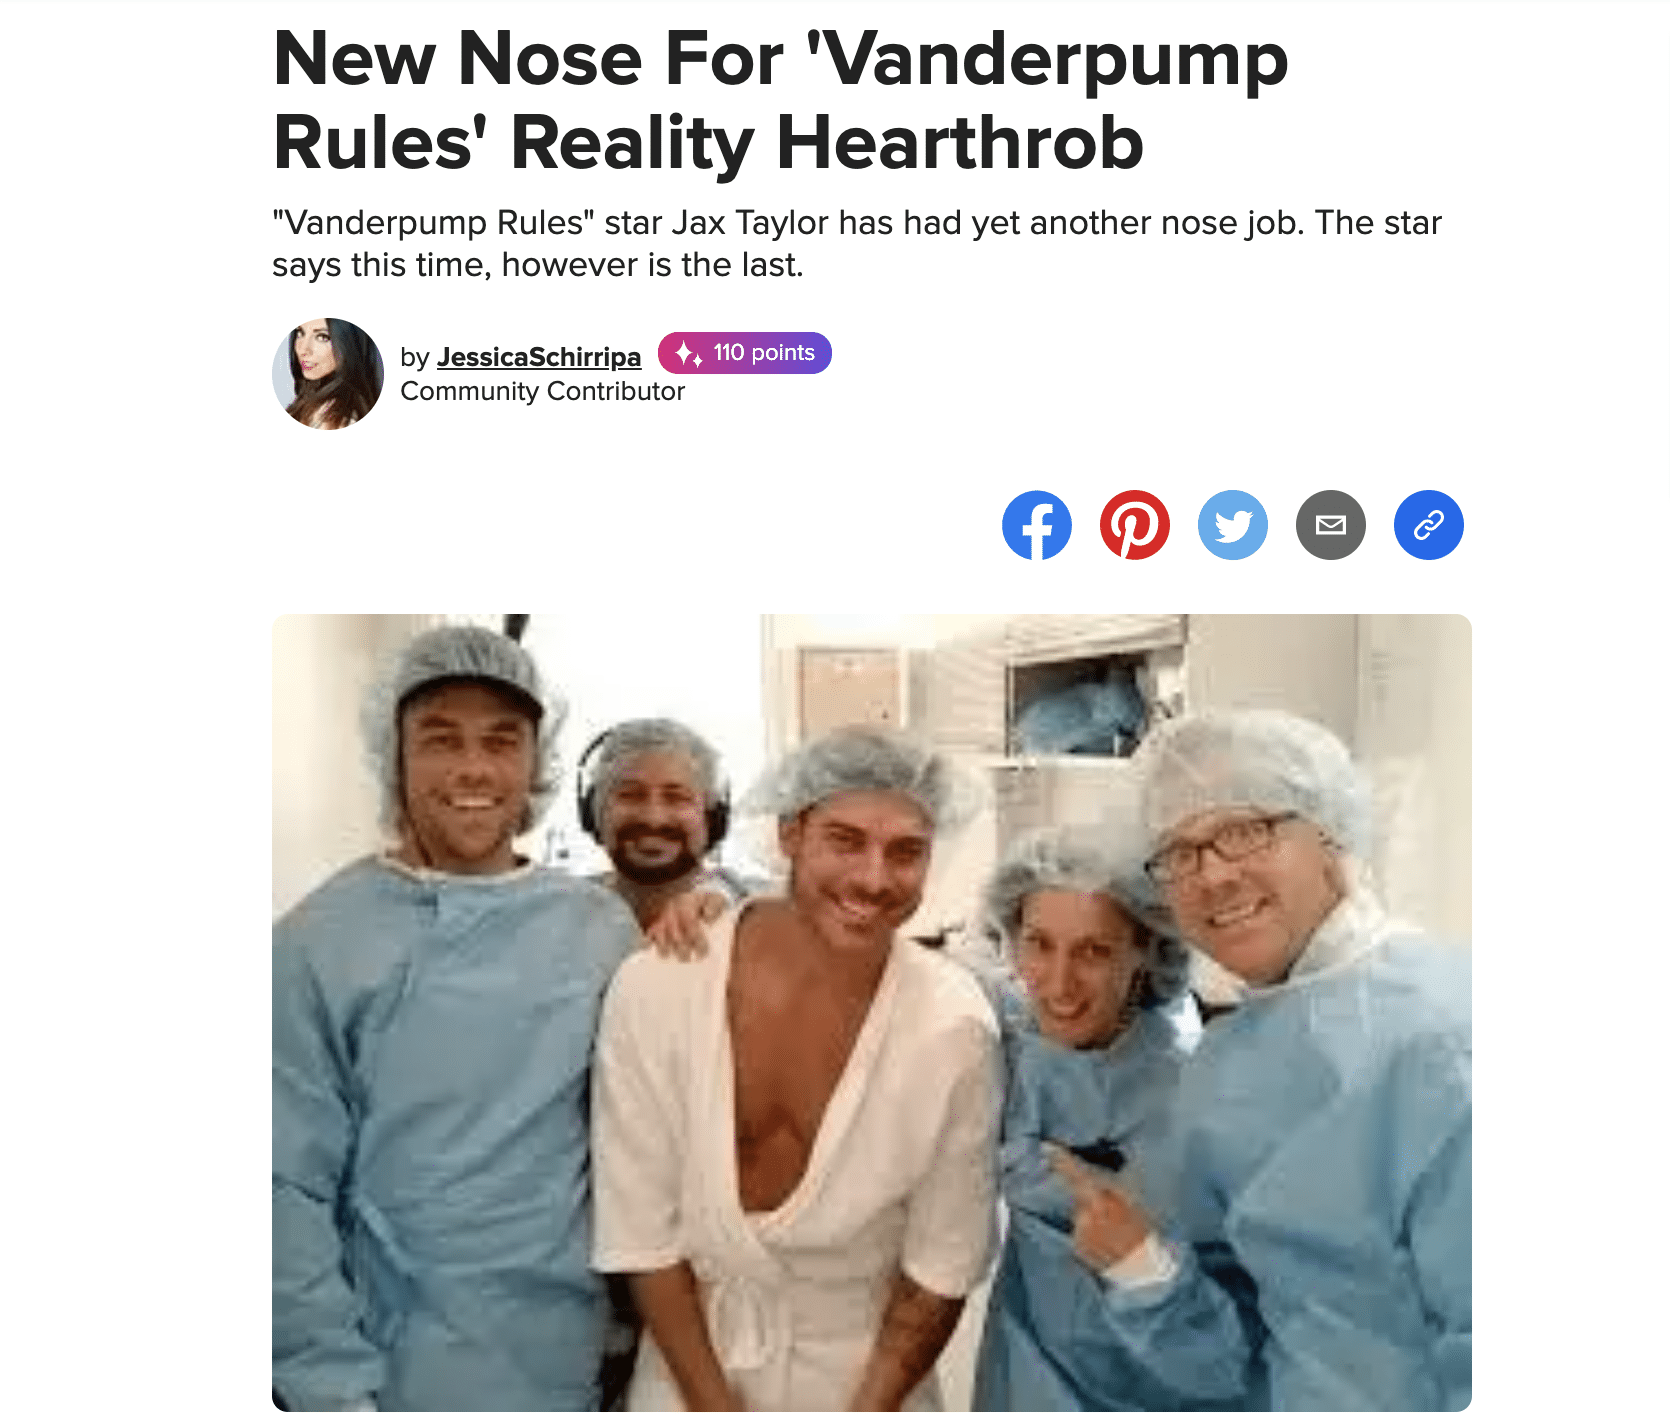 New Nose For 'Vanderpump Rules' Reality Hearthrob